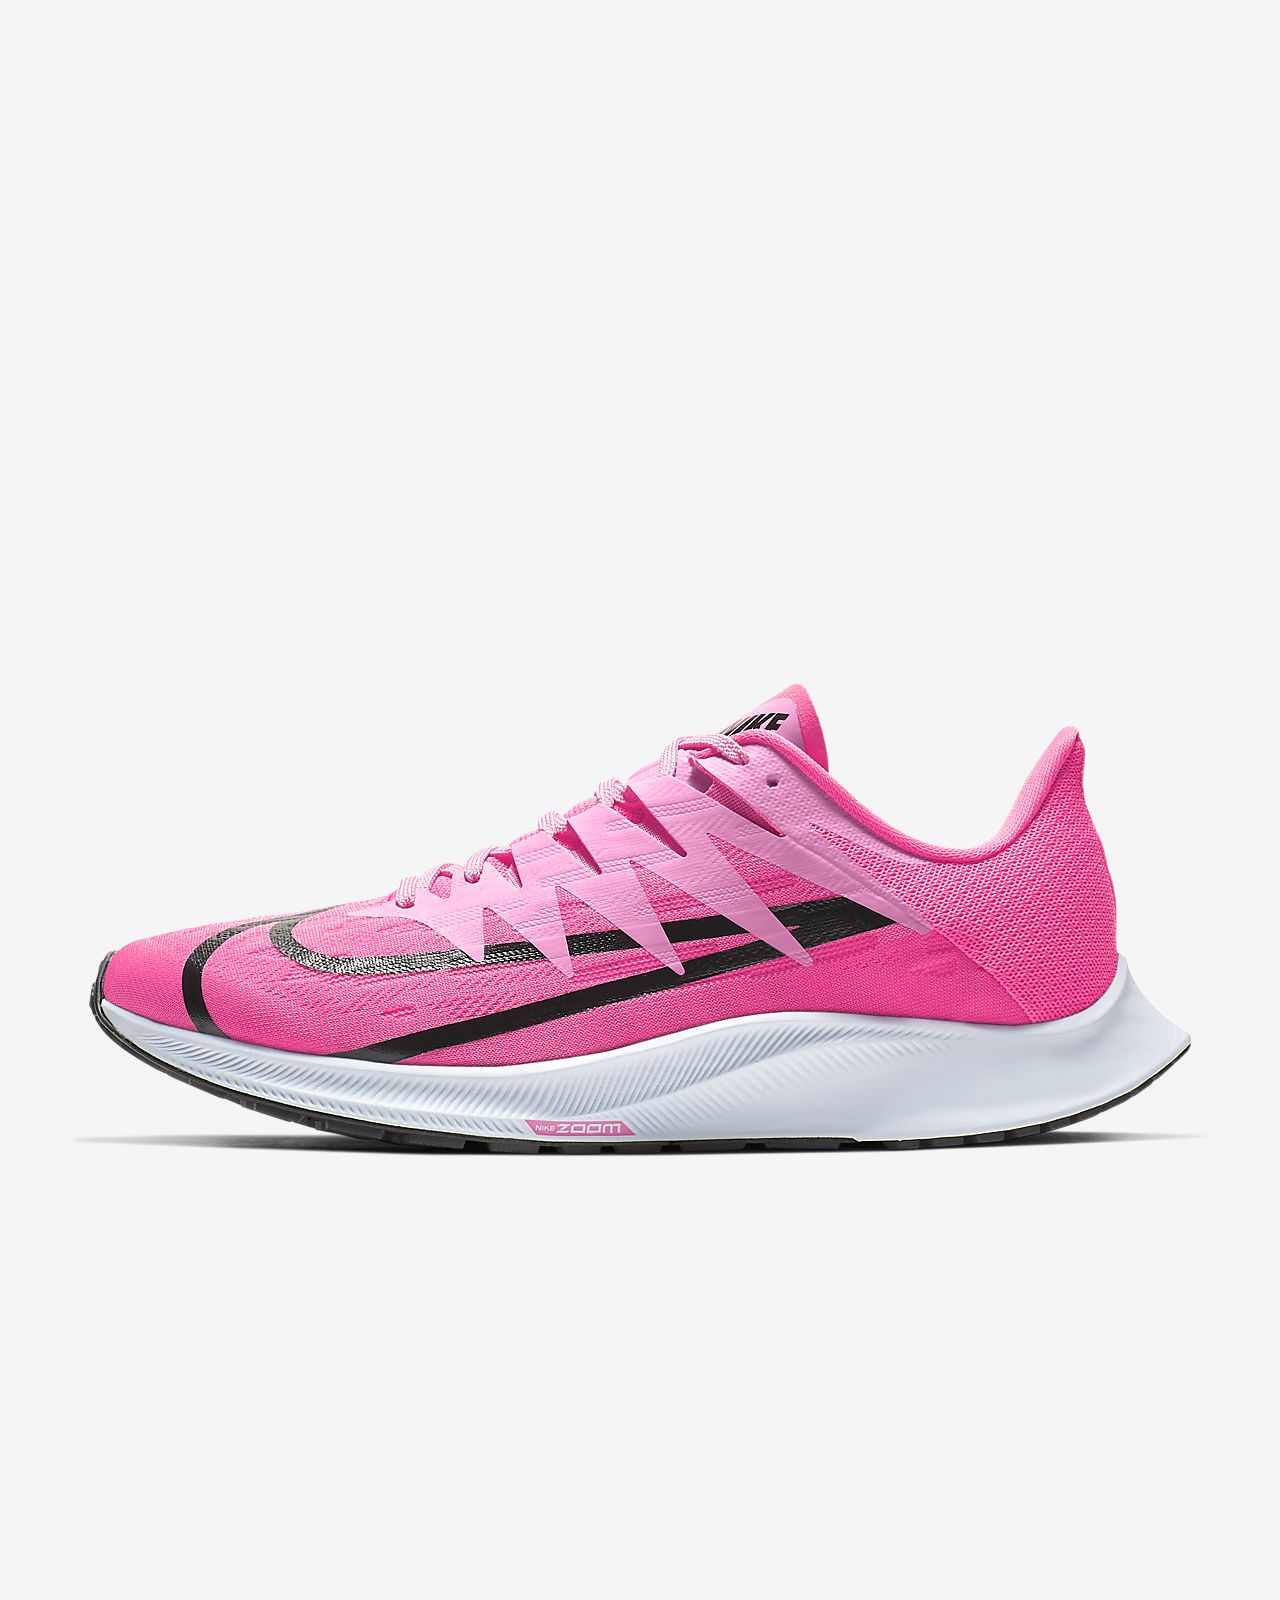 Running Chaussure Fly Pour Nike Zoom Femme Rival De E9YWDIHe2